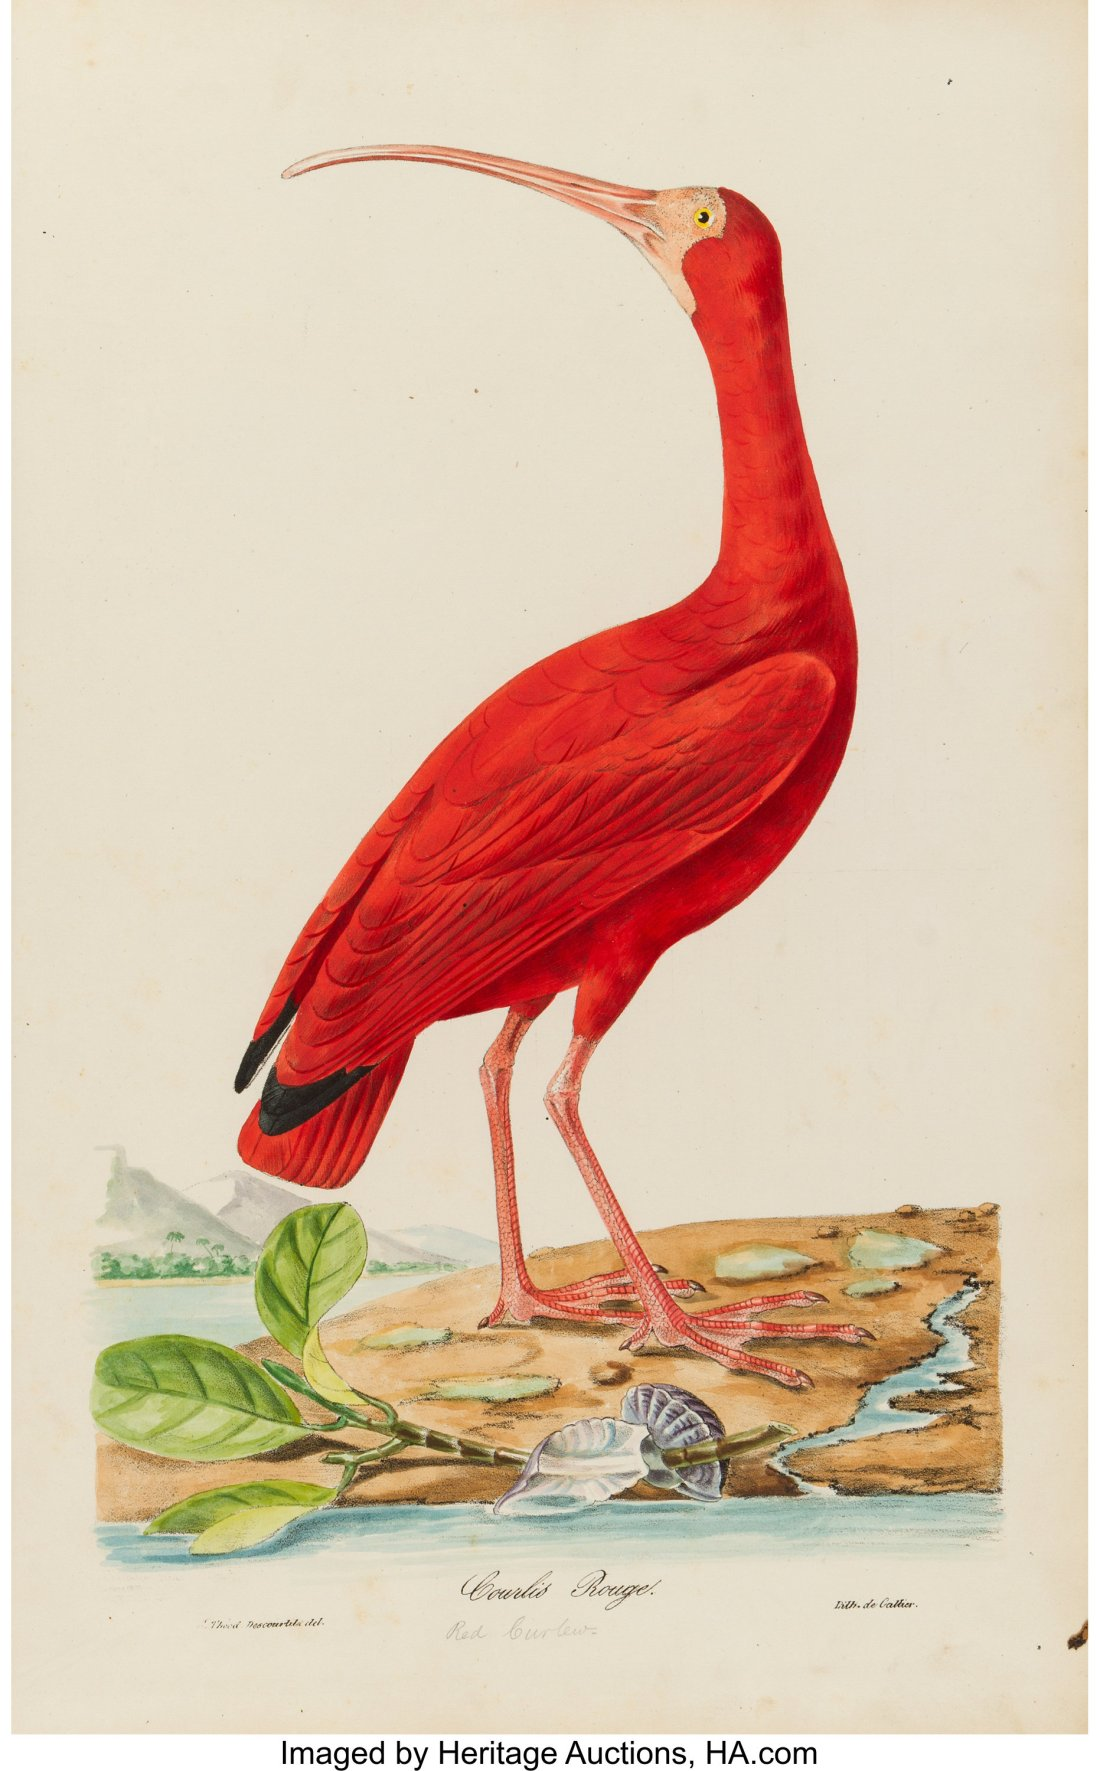 An 1834 first edition of Oiseaux brillans du Brésil by Jean Théodore Descourtilz. Pictured is the Red Curlew plate from the book.